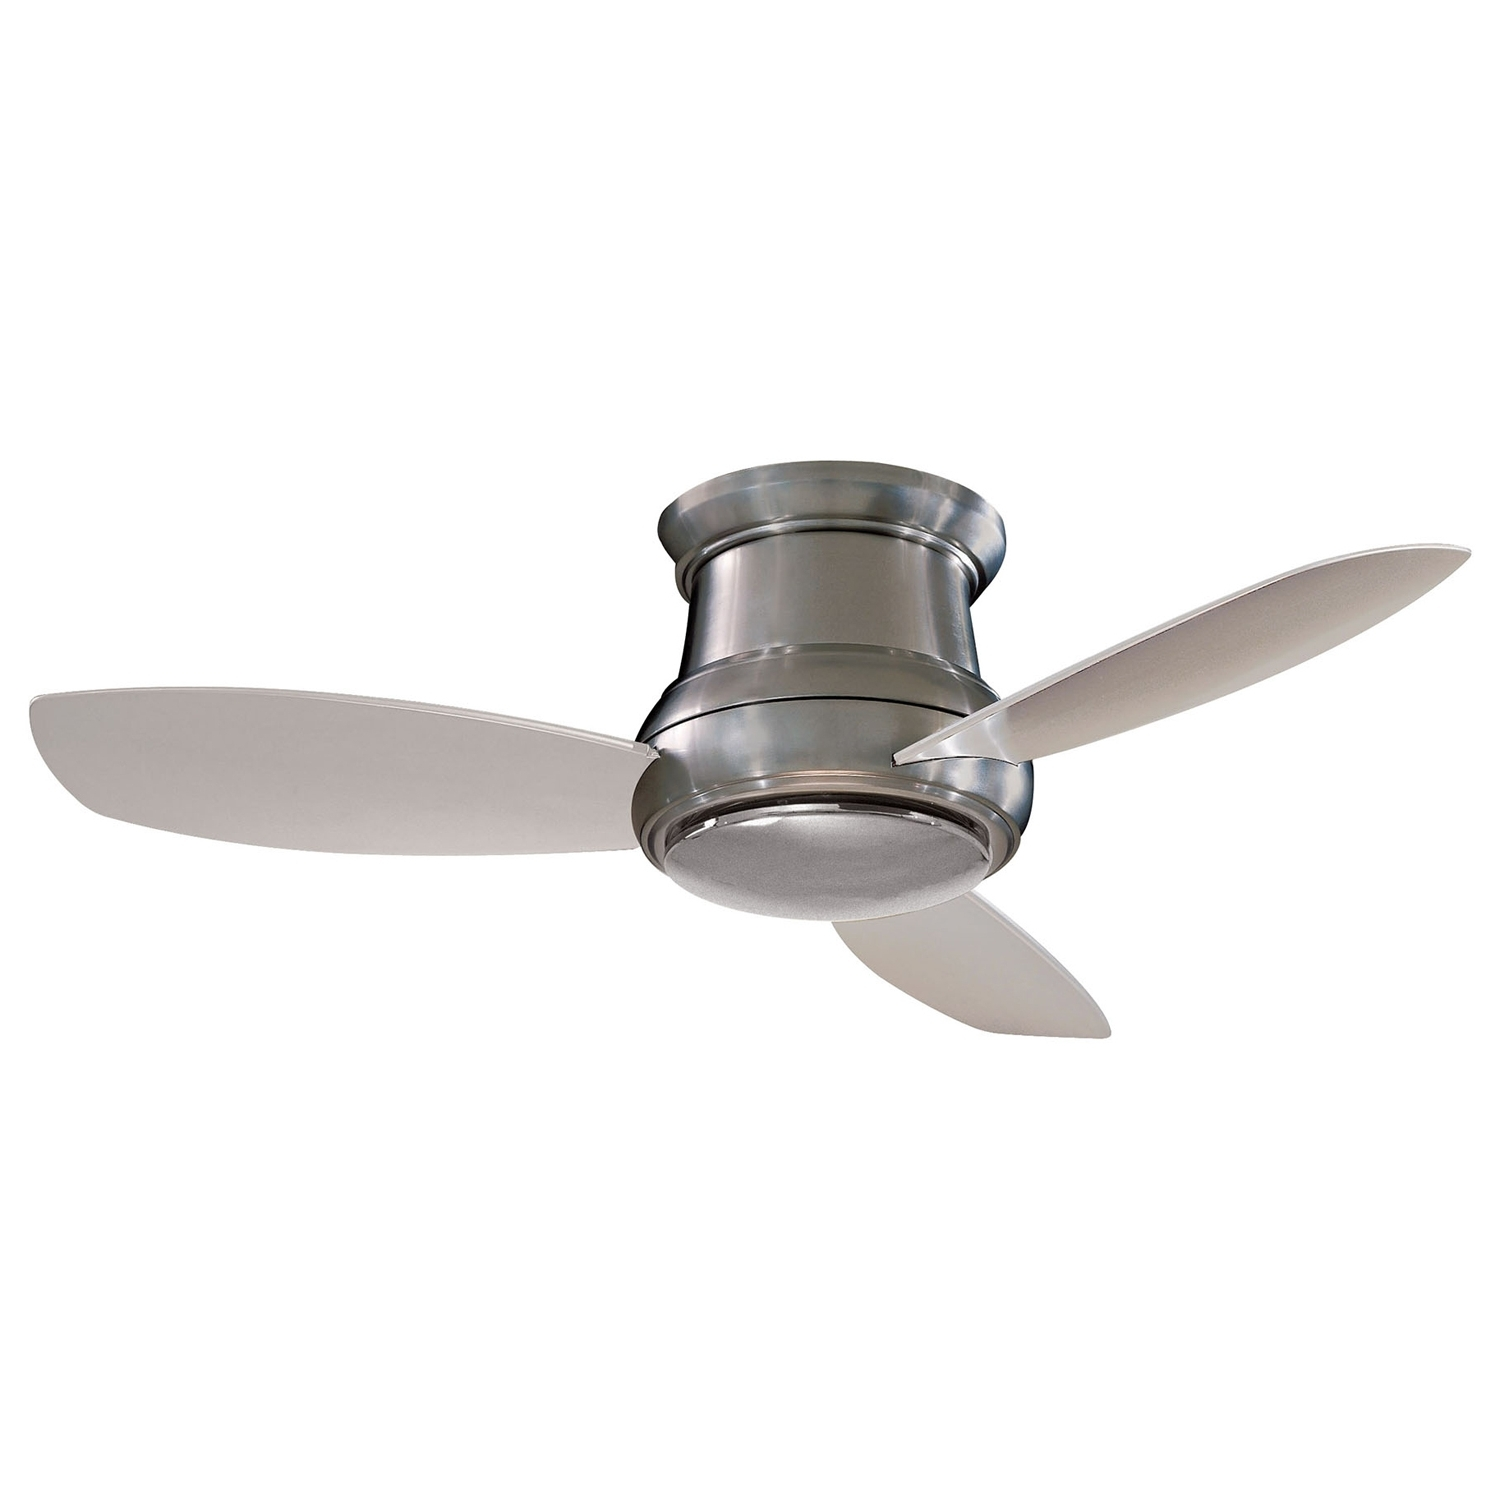 Most Popular 36 Inch Outdoor Ceiling Fans With Light Flush Mount Regarding Small Ceilin Amazing 36 Ceiling Fans With Lights Flush Mount (View 3 of 20)